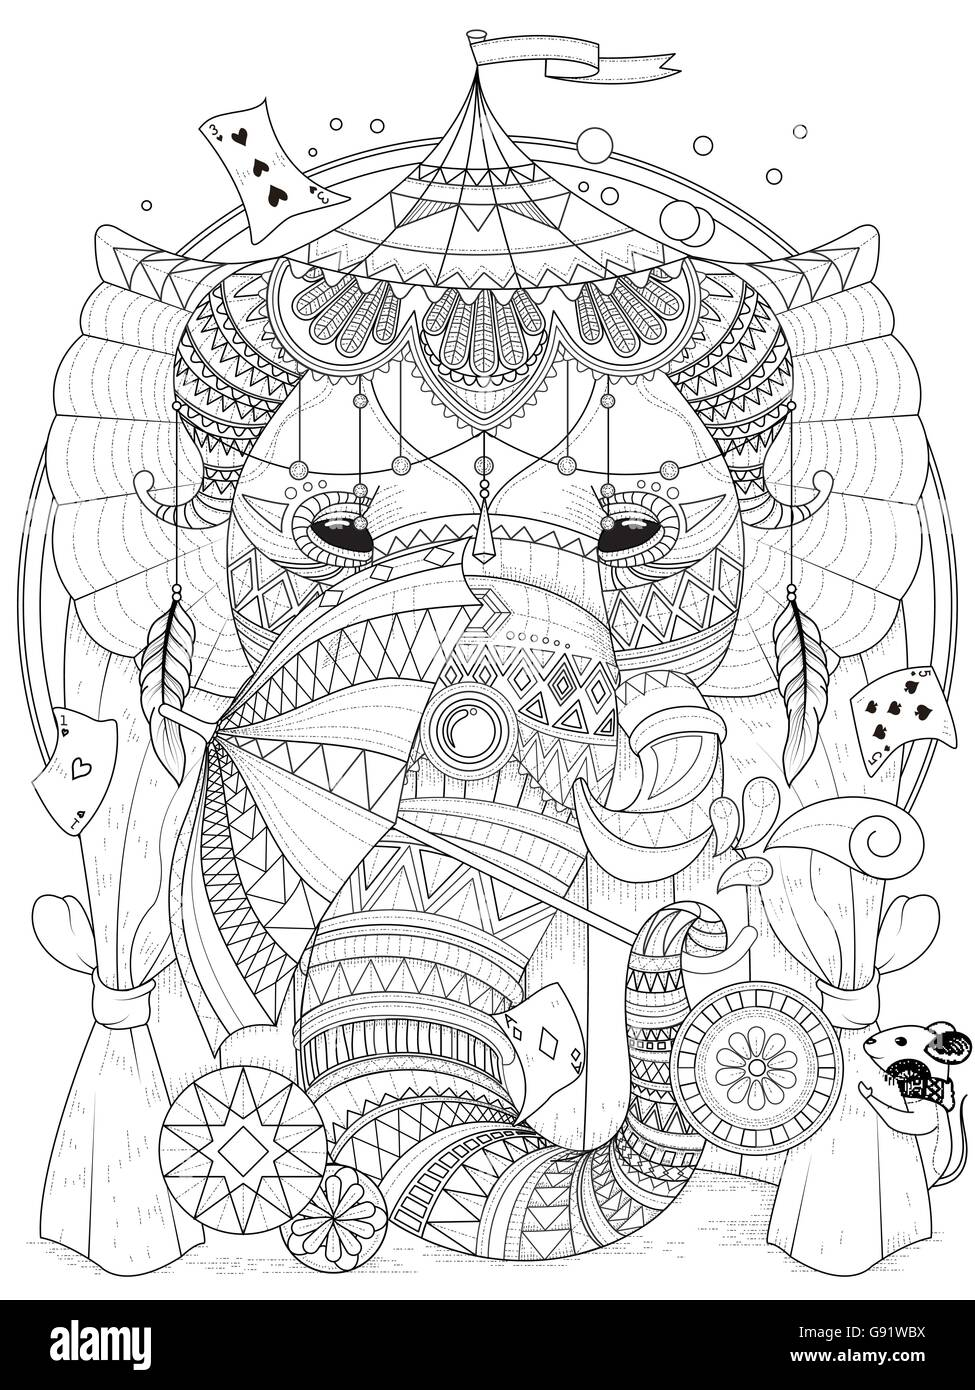 stock vector adult coloring page elephant in the circus with magic props - Coloring Page Elephant Design